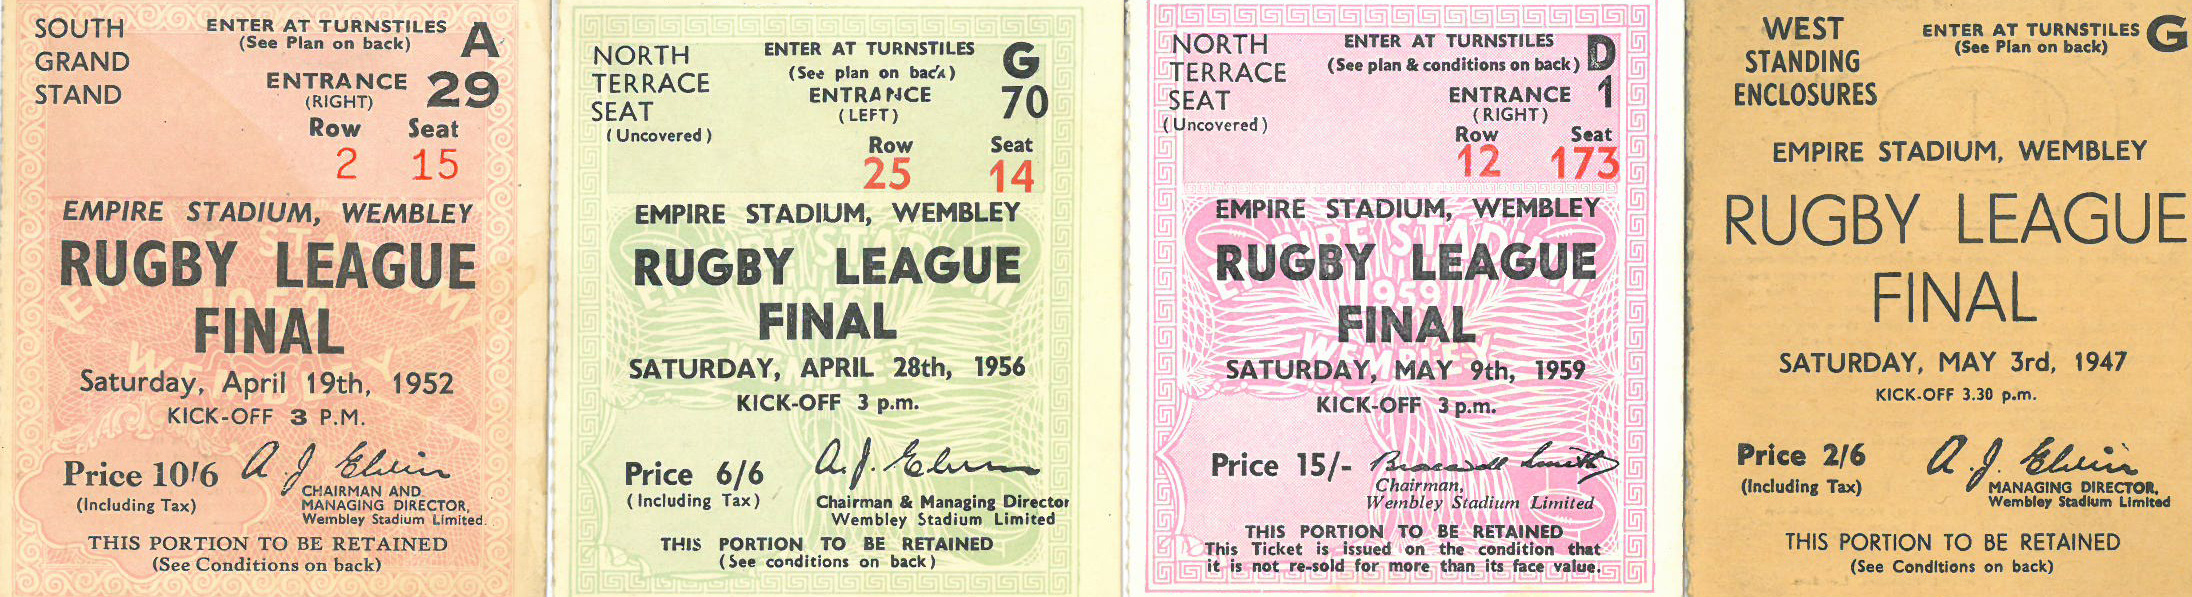 Rugby League final tickets various